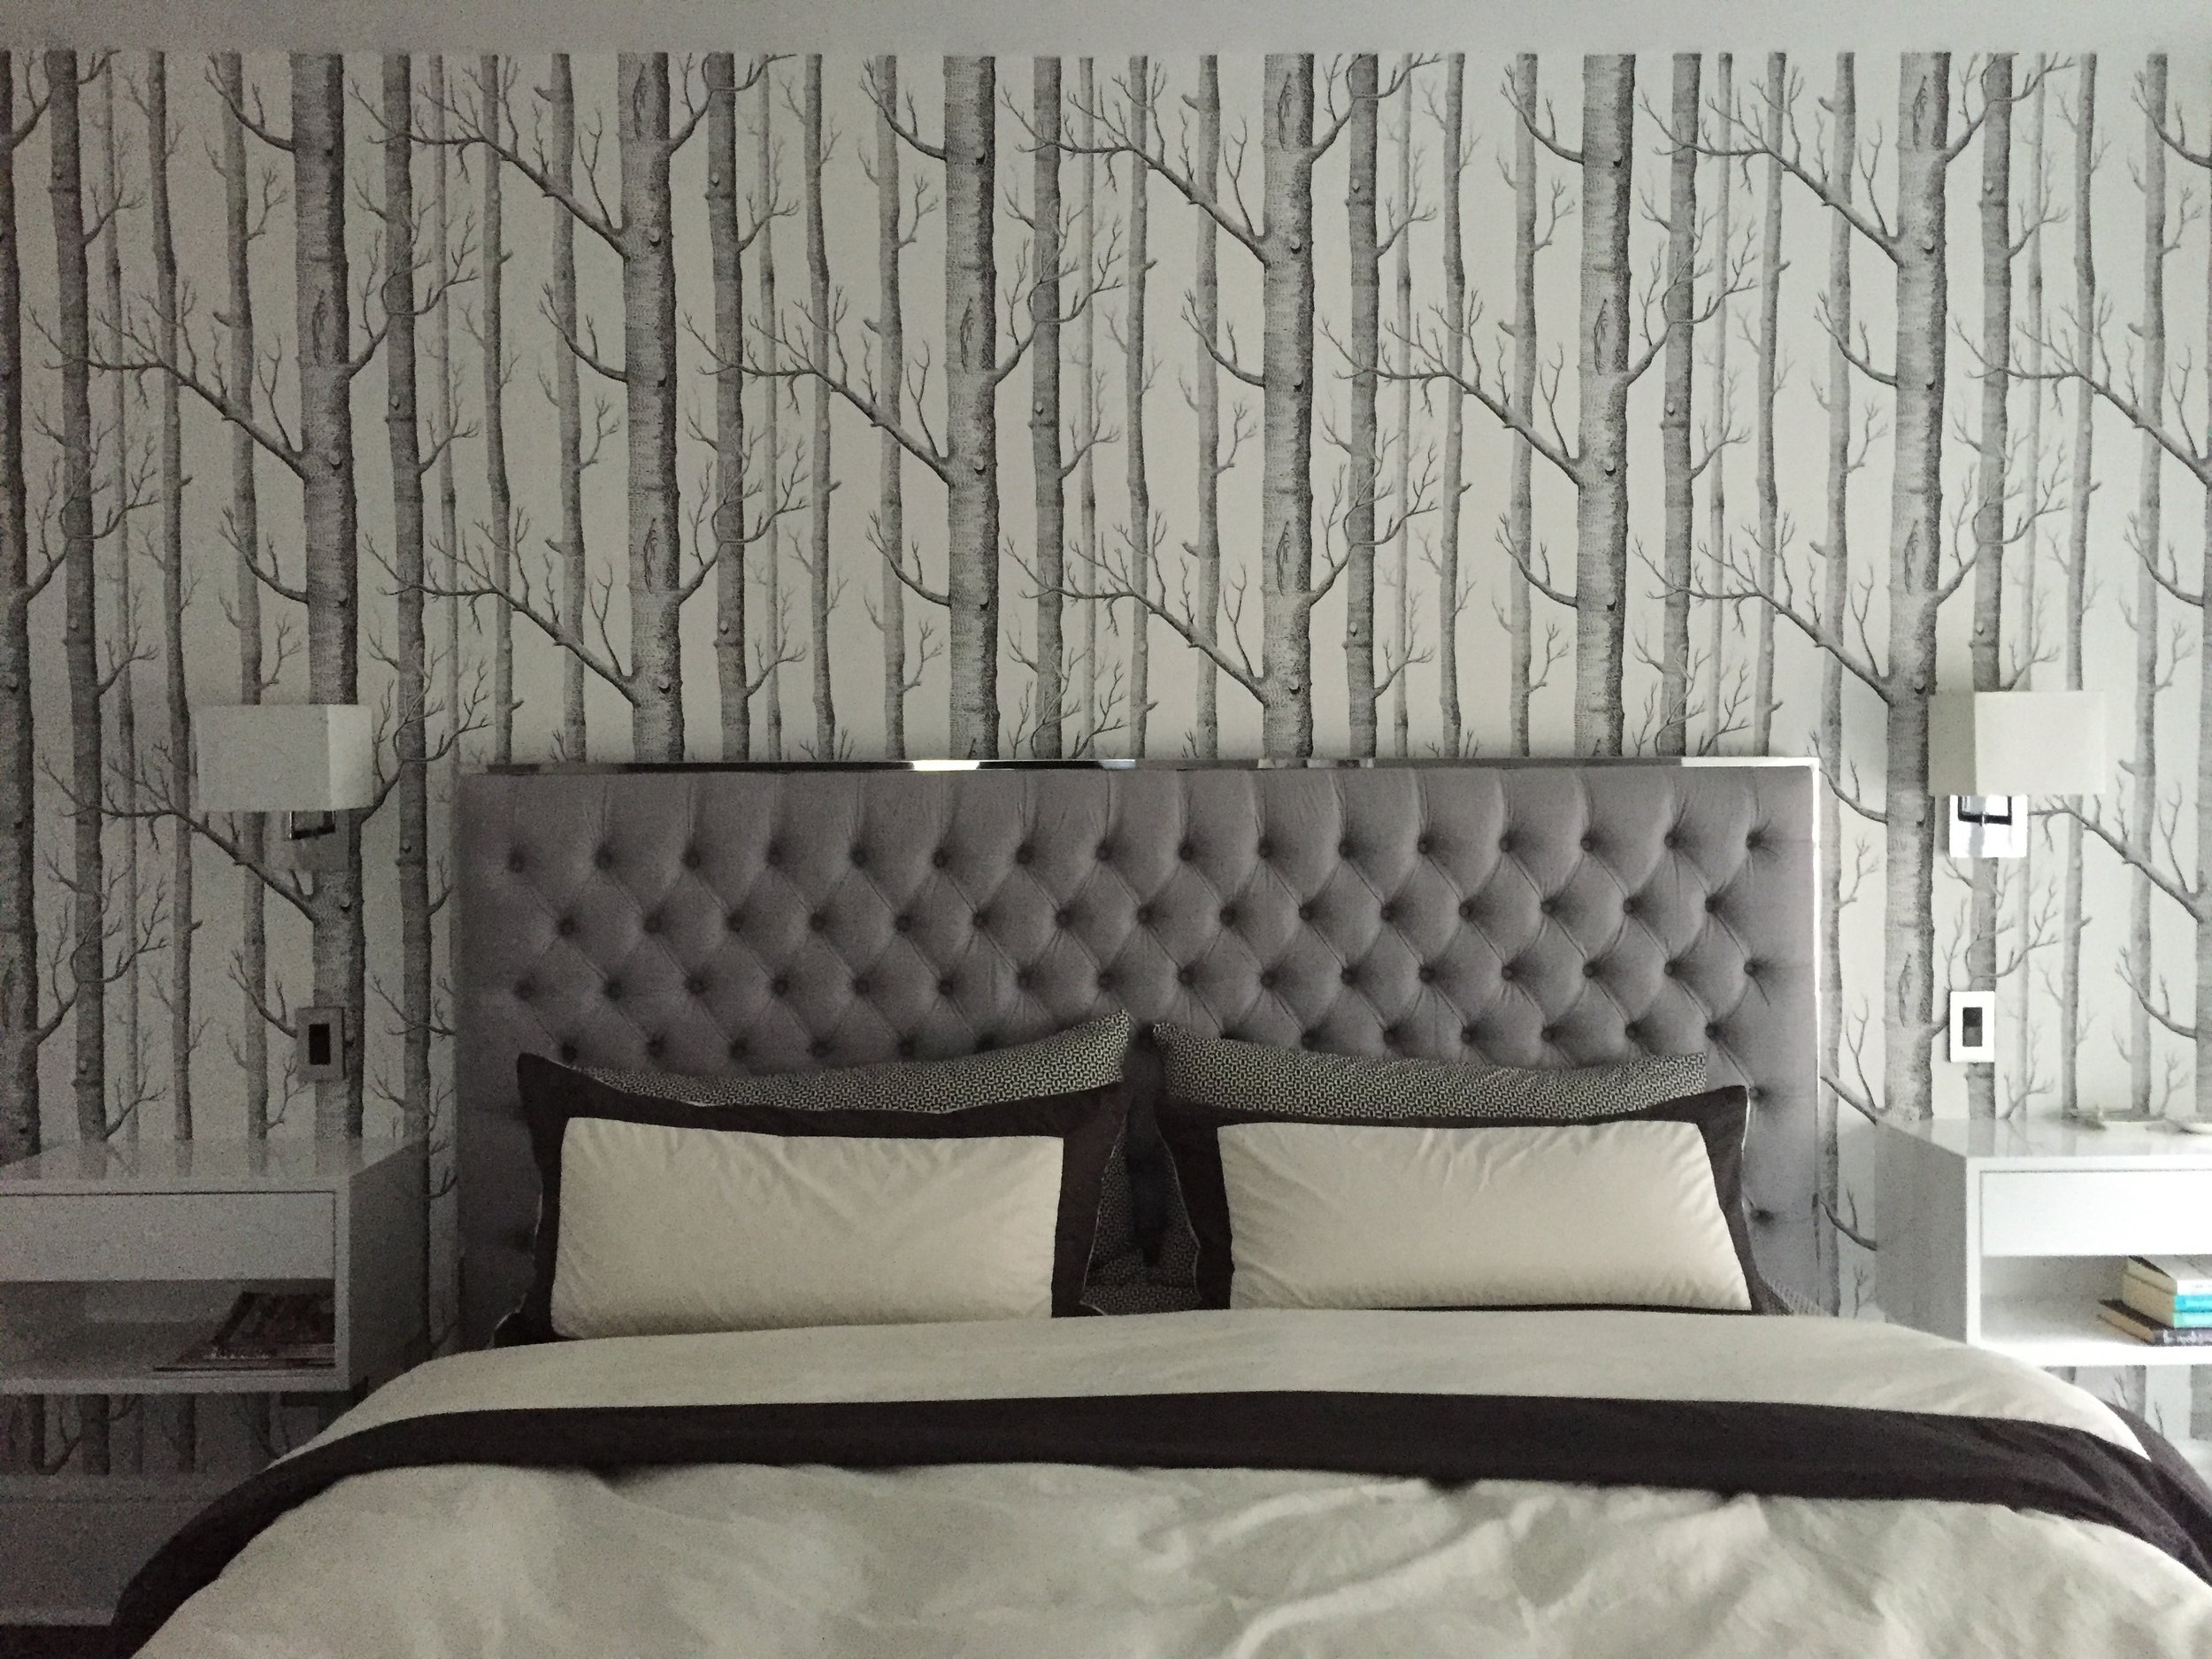 Photo of installed wallpaper in our bedroom.